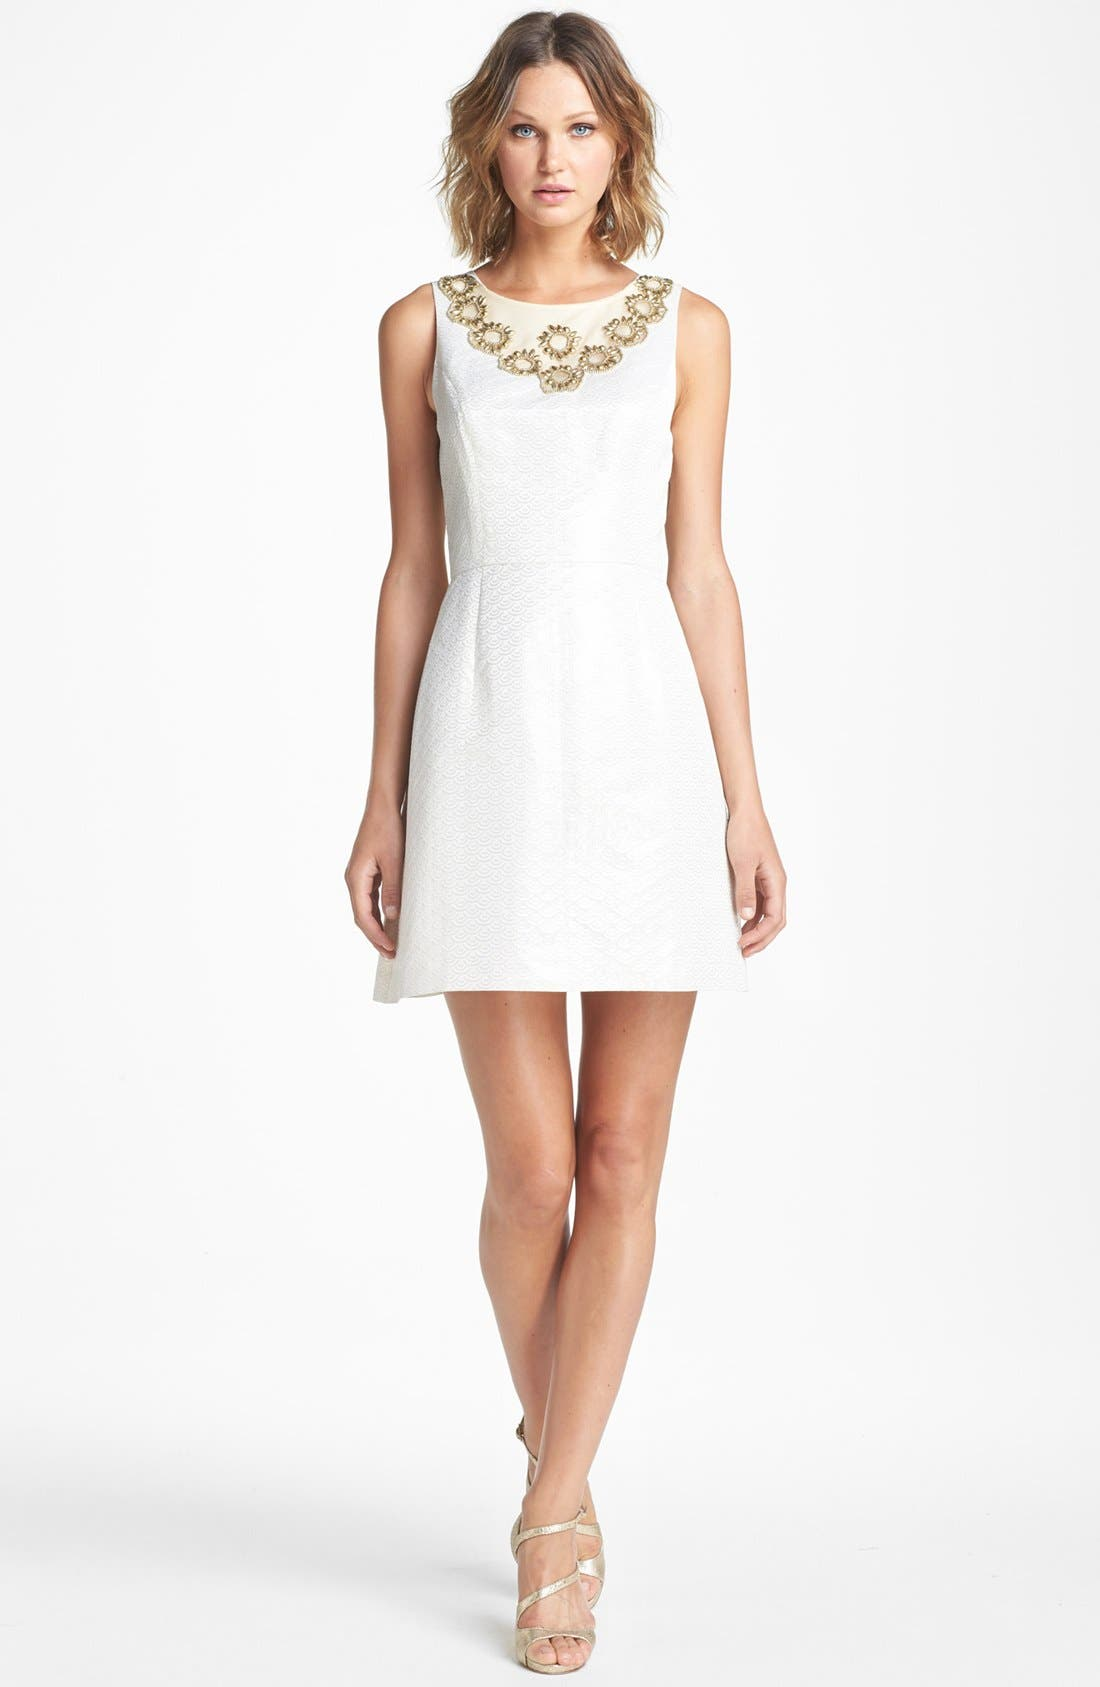 Main Image - Lilly Pulitzer® 'Wythe' Embellished Jacquard Fit & Flare Dress